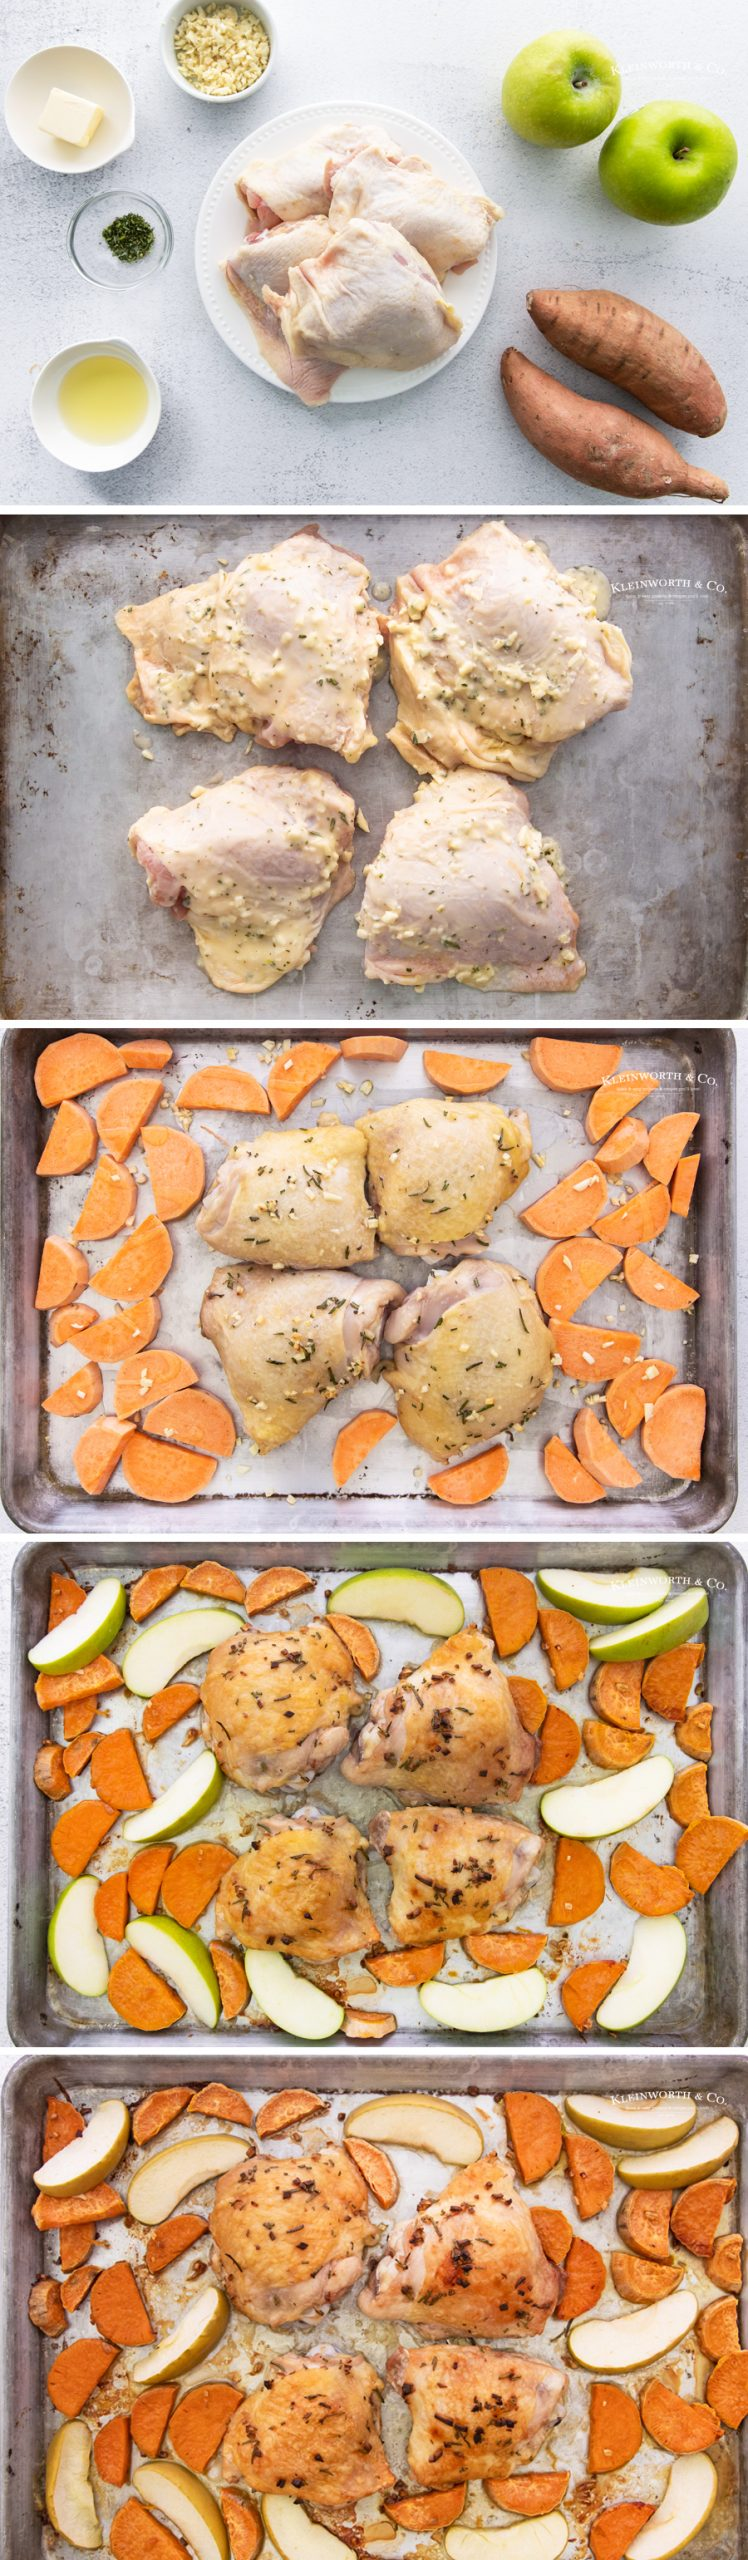 how to make Sheet Pan Chicken Thighs